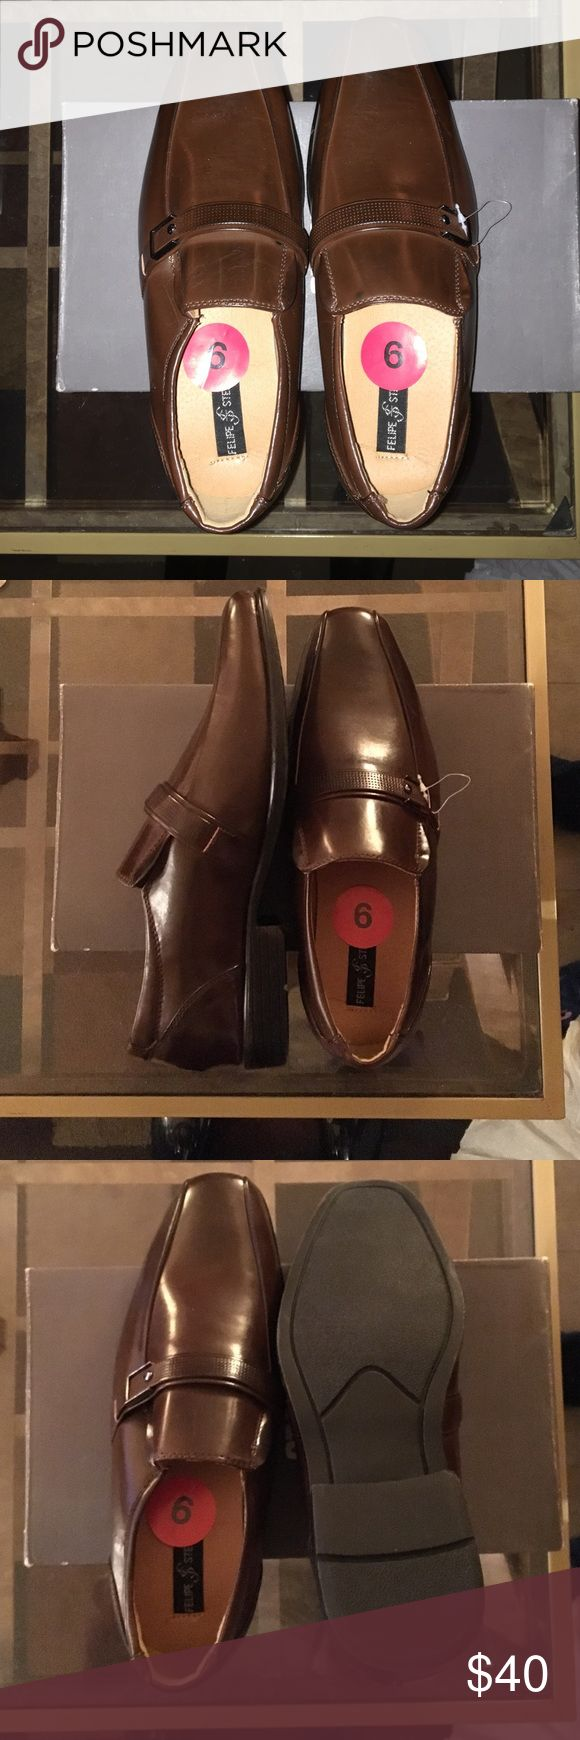 Boys Brown Dress Shoes BRAND NEW !!! Boys Brown Dress Shoes .Size 6 . Perfect for church or a family occasion Shoes Dress Shoes